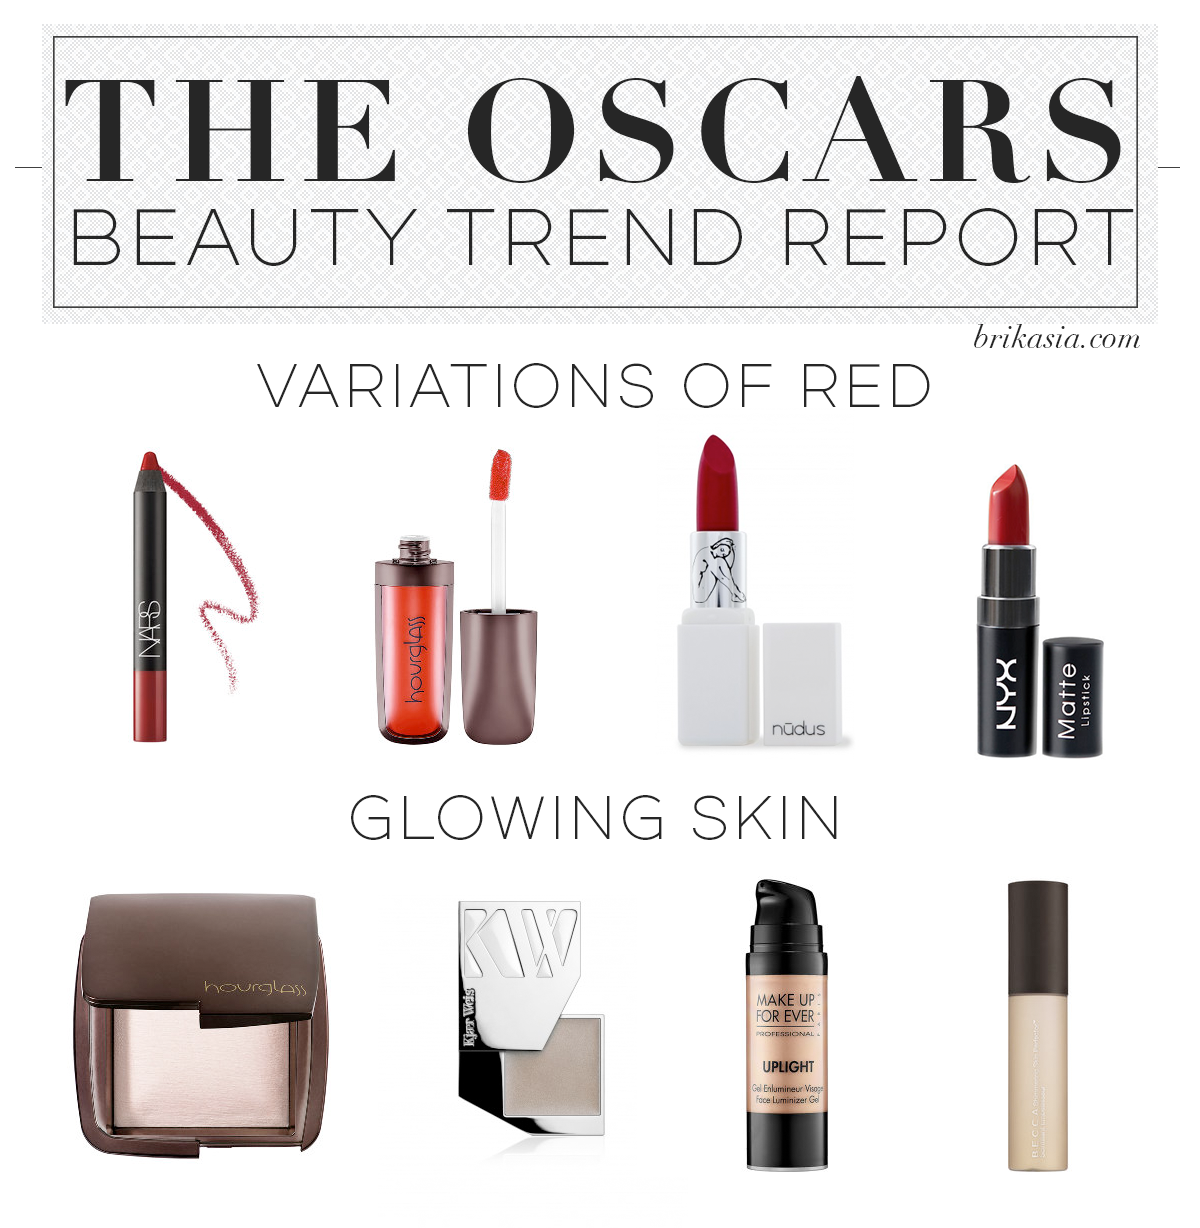 Oscars 2015 Beauty Trend Report, makeup trends oscars, the oscars beauty trends, red lipstick trends, glowing skin makeup trend